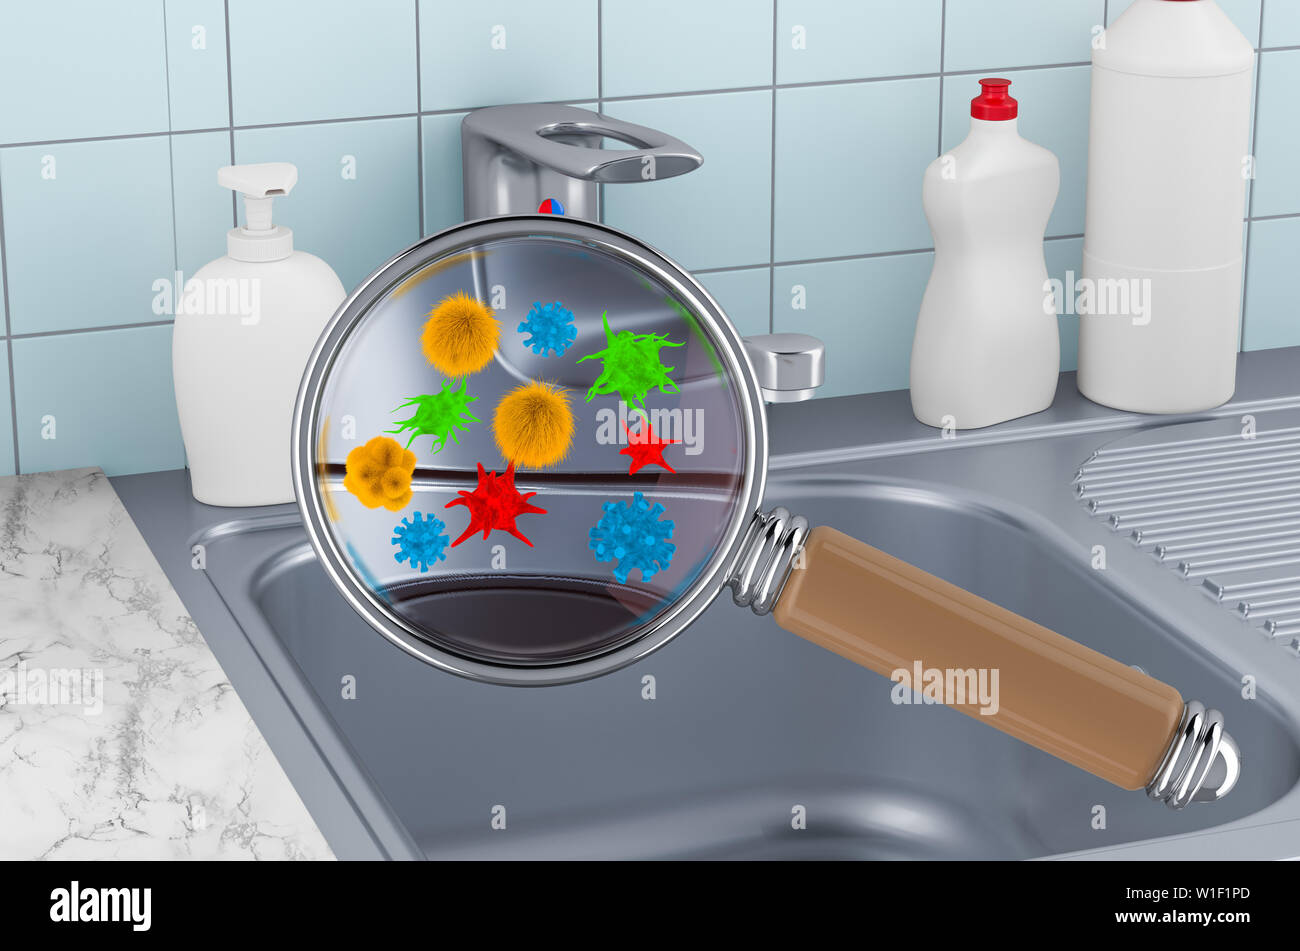 Phenomenal Kitchen Sink With Germs And Bacterias Under Magnifying Glass Complete Home Design Collection Papxelindsey Bellcom